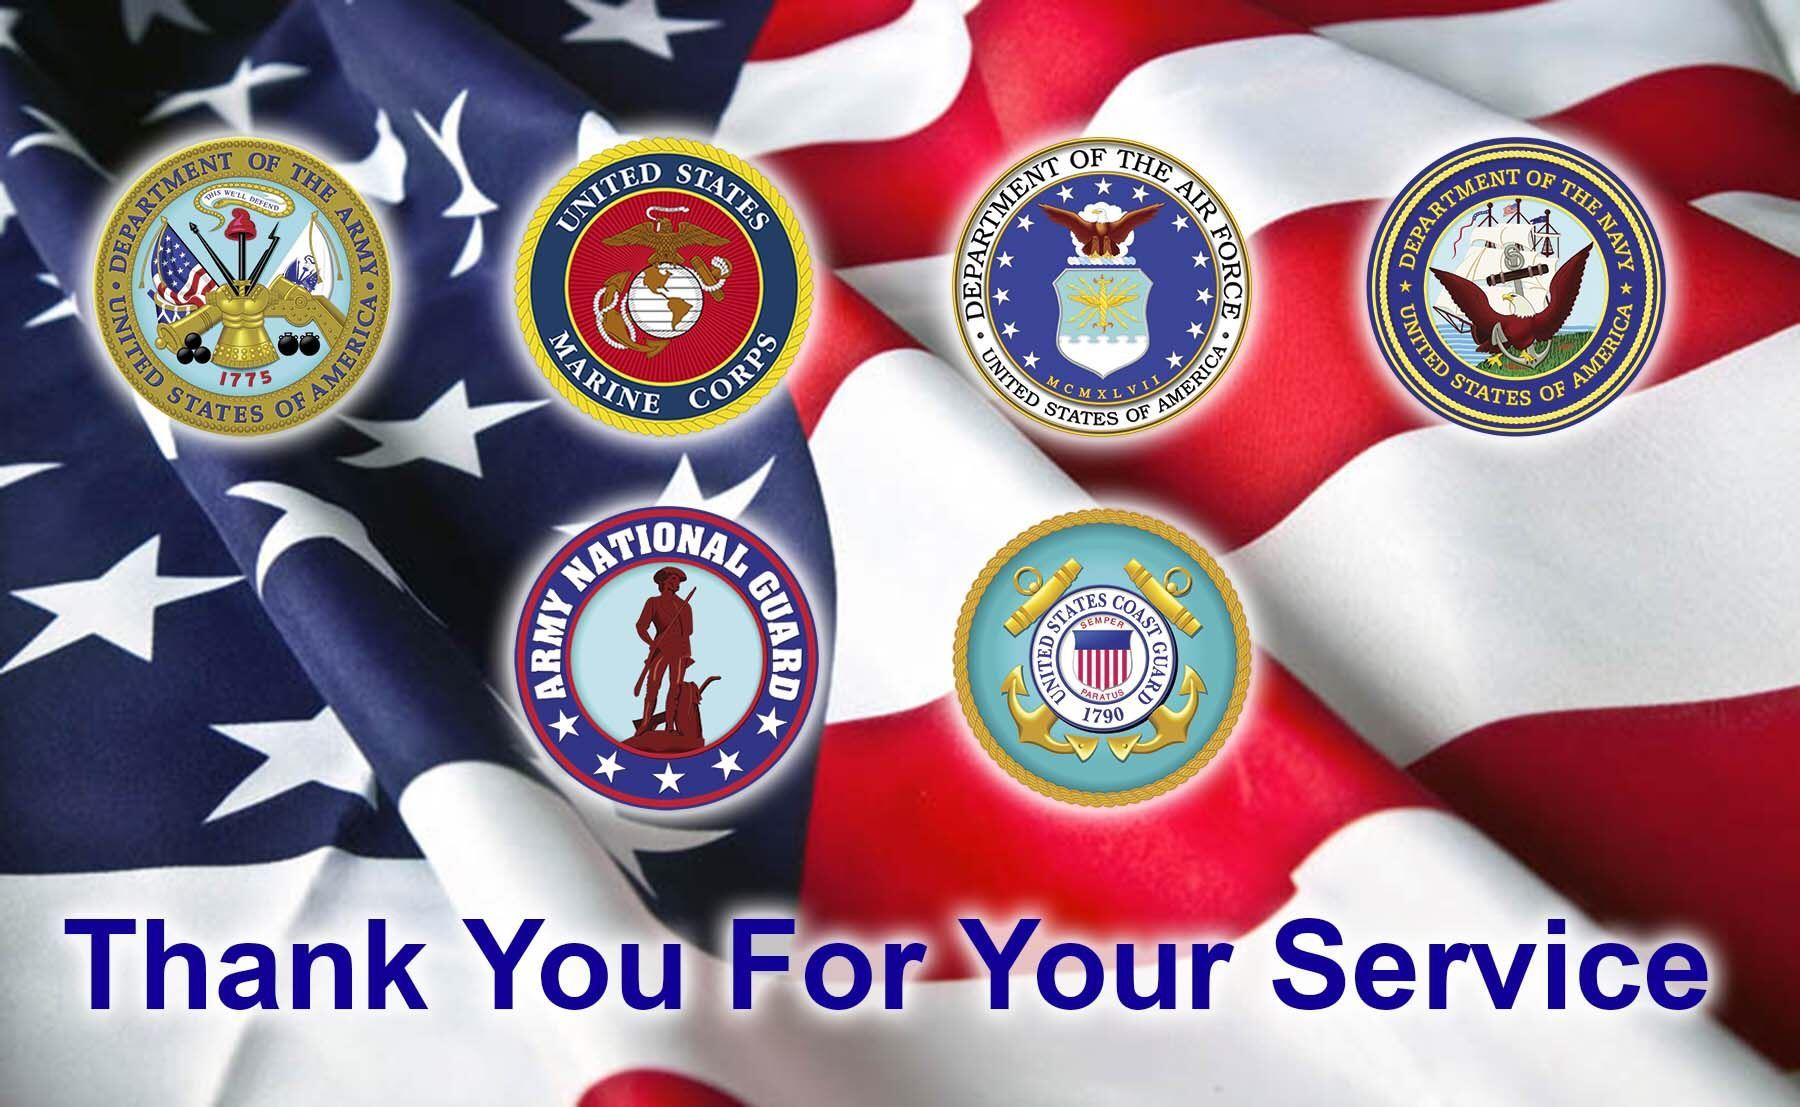 veterans-thank-you-for-your-service